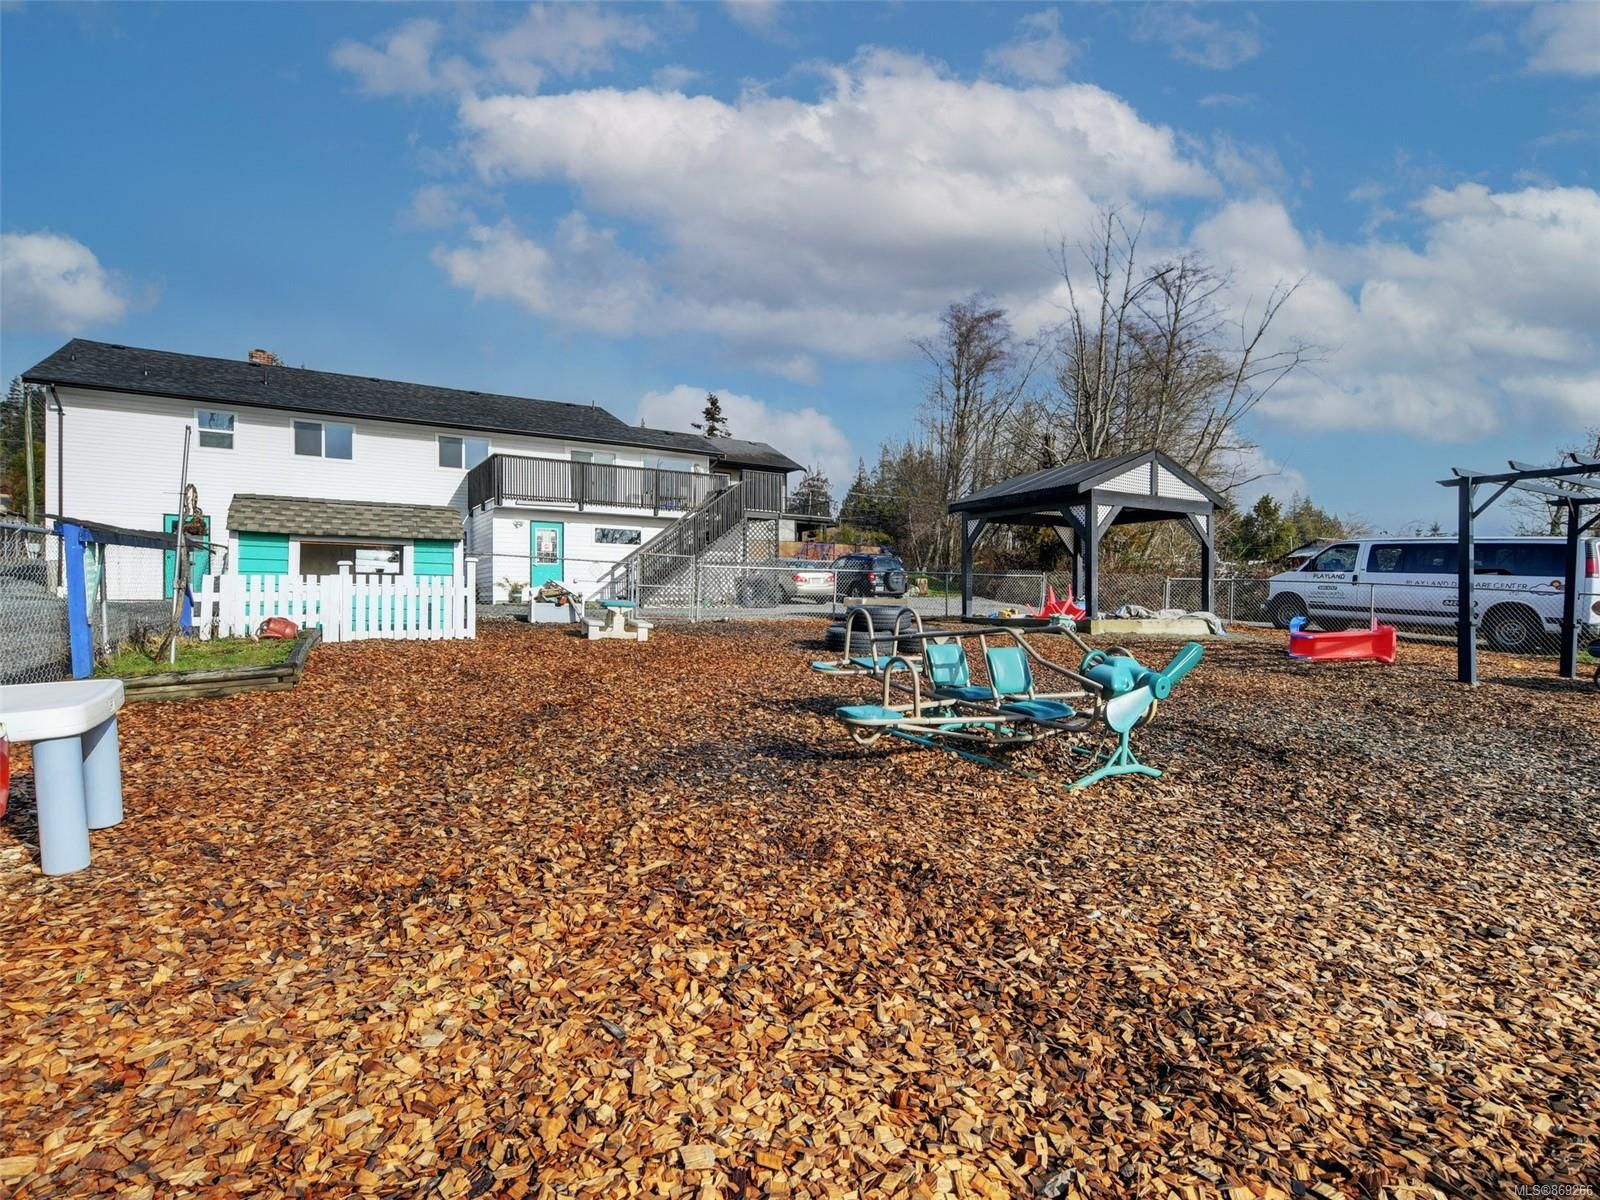 Main Photo: 7081 W Grant Rd in : Sk Sooke Vill Core Mixed Use for sale (Sooke)  : MLS®# 869266